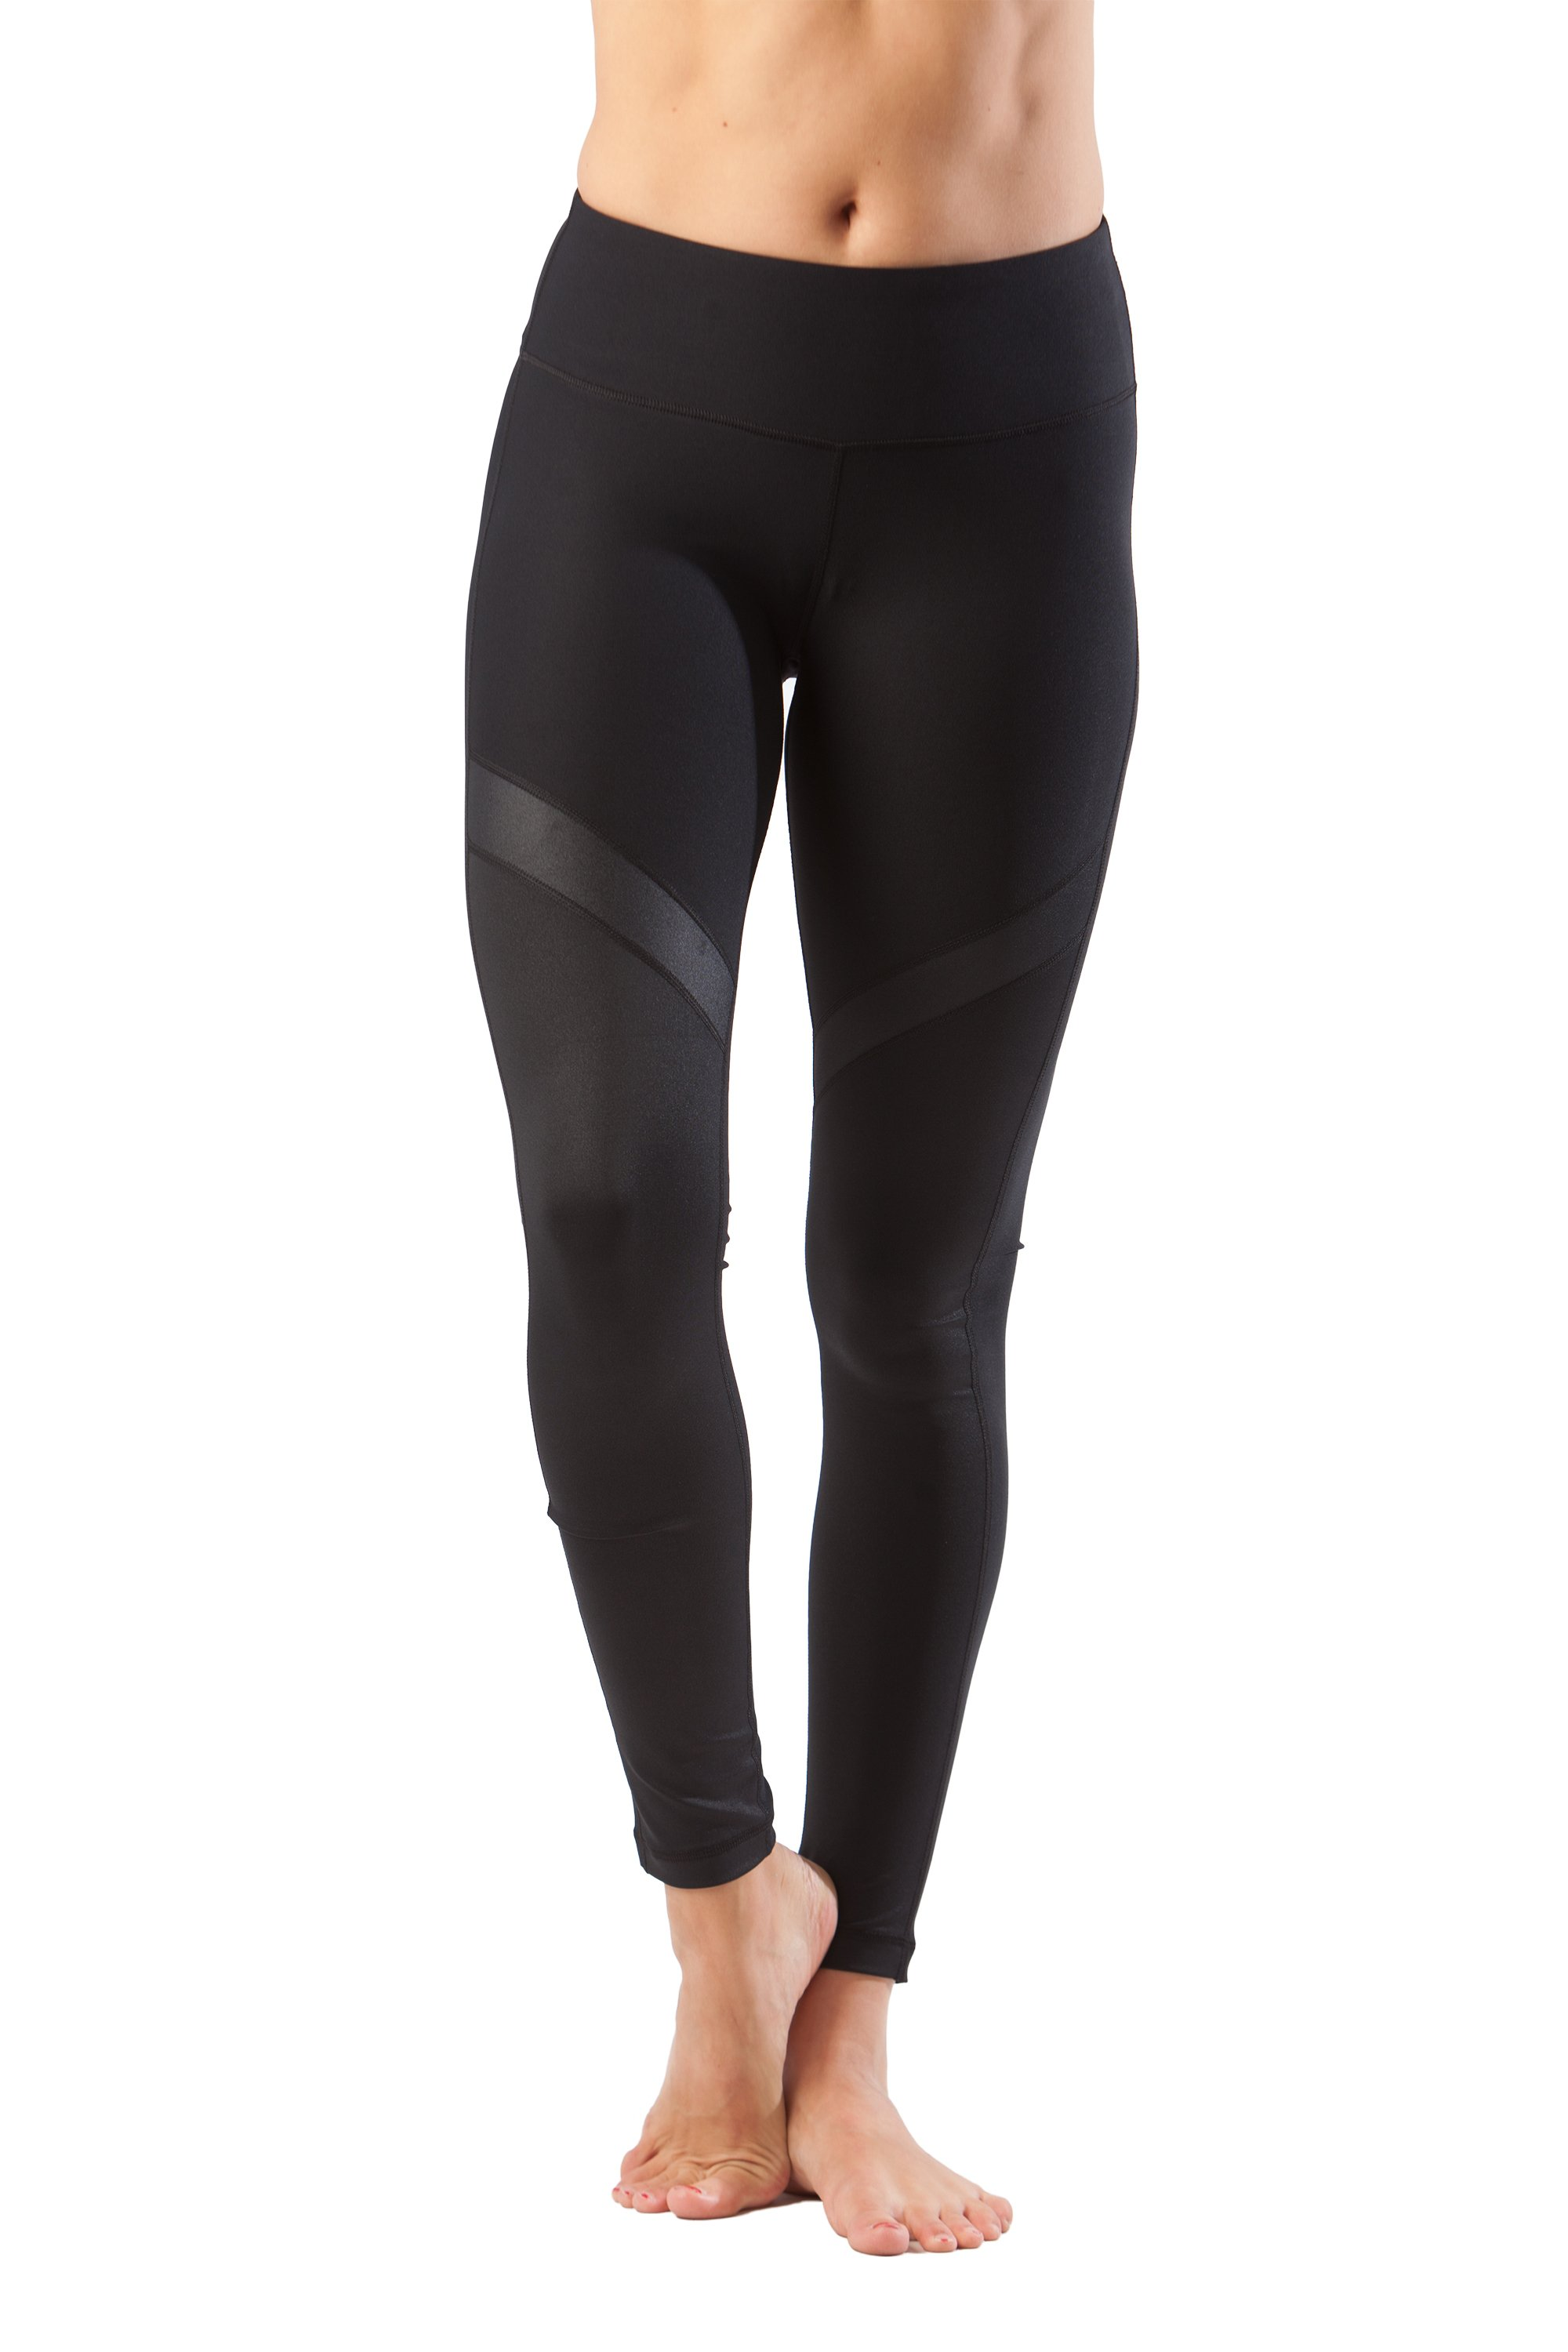 90 Degree By Reflex - Shimmer Mesh Contrast Leggings